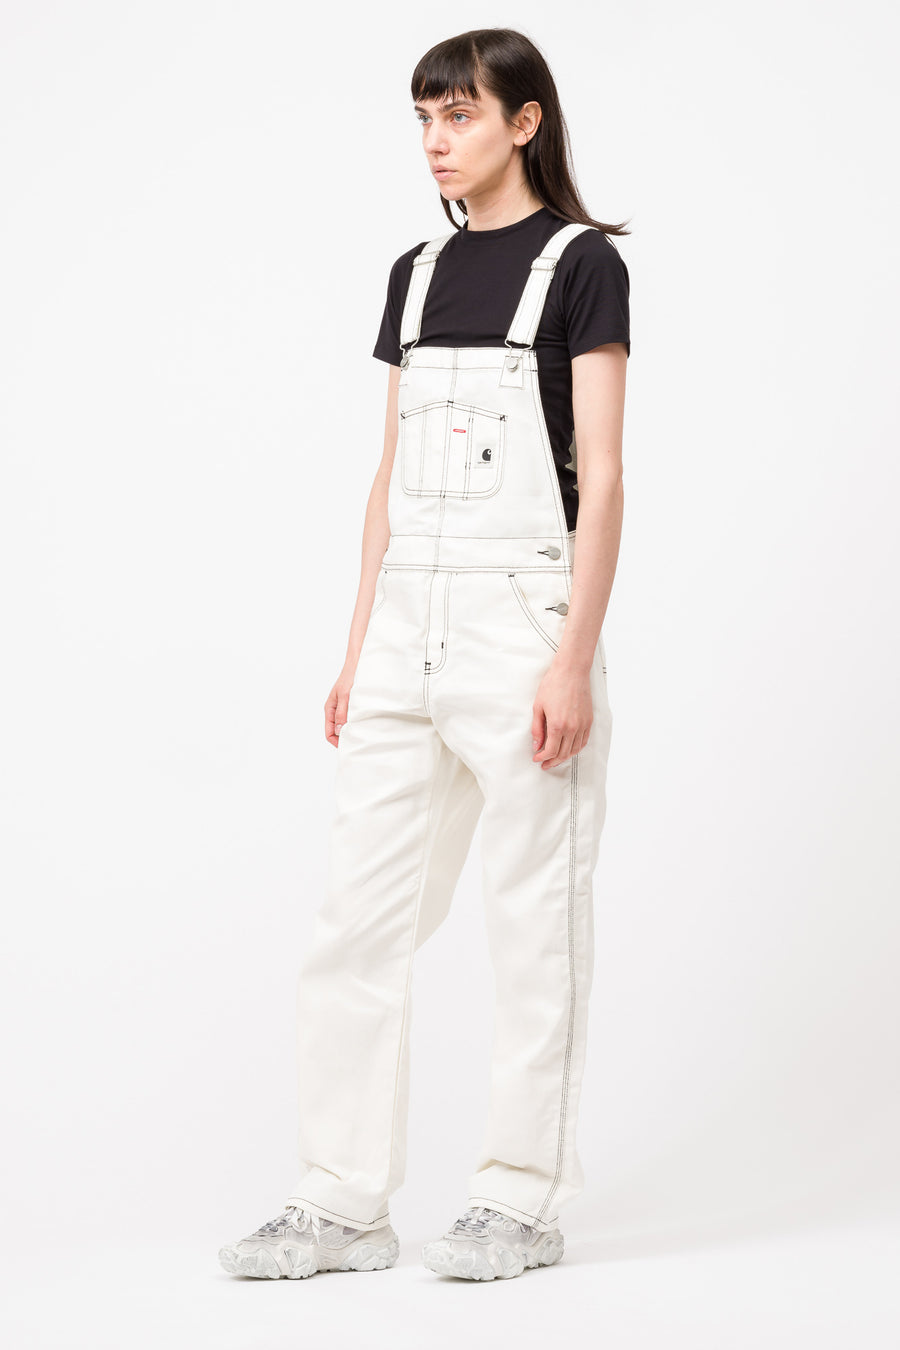 Carhartt WIP Bib Overall Straight Griffith Twill in Wax - Notre